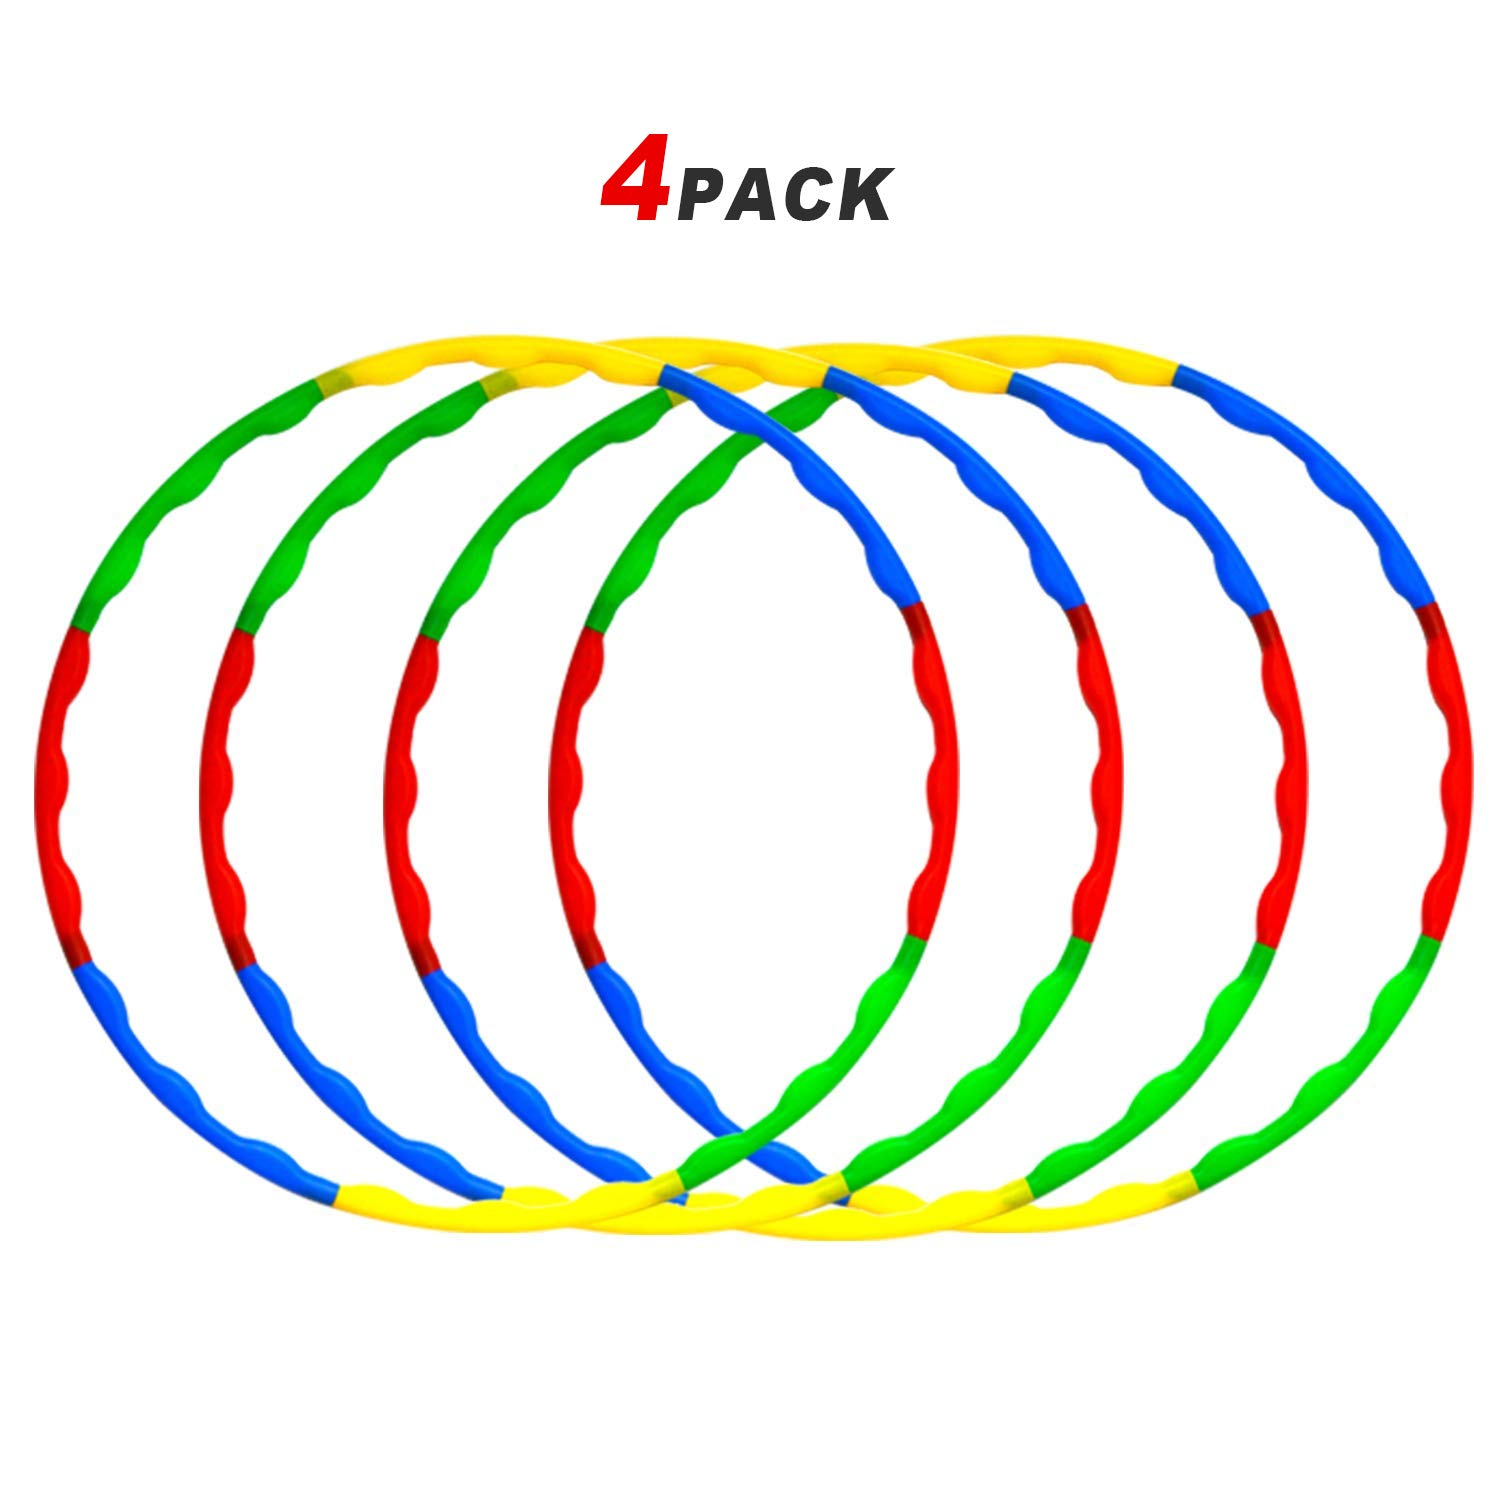 4 Pack Kids Weighted & Exercise Hoola Hoops -Hula Rings -Snap Together Detachable Adjustable Weight Size Plastic Hoops -Toy Hoop Set Bulk for Sports Playing & Games Outdoor Indoor by HongMe